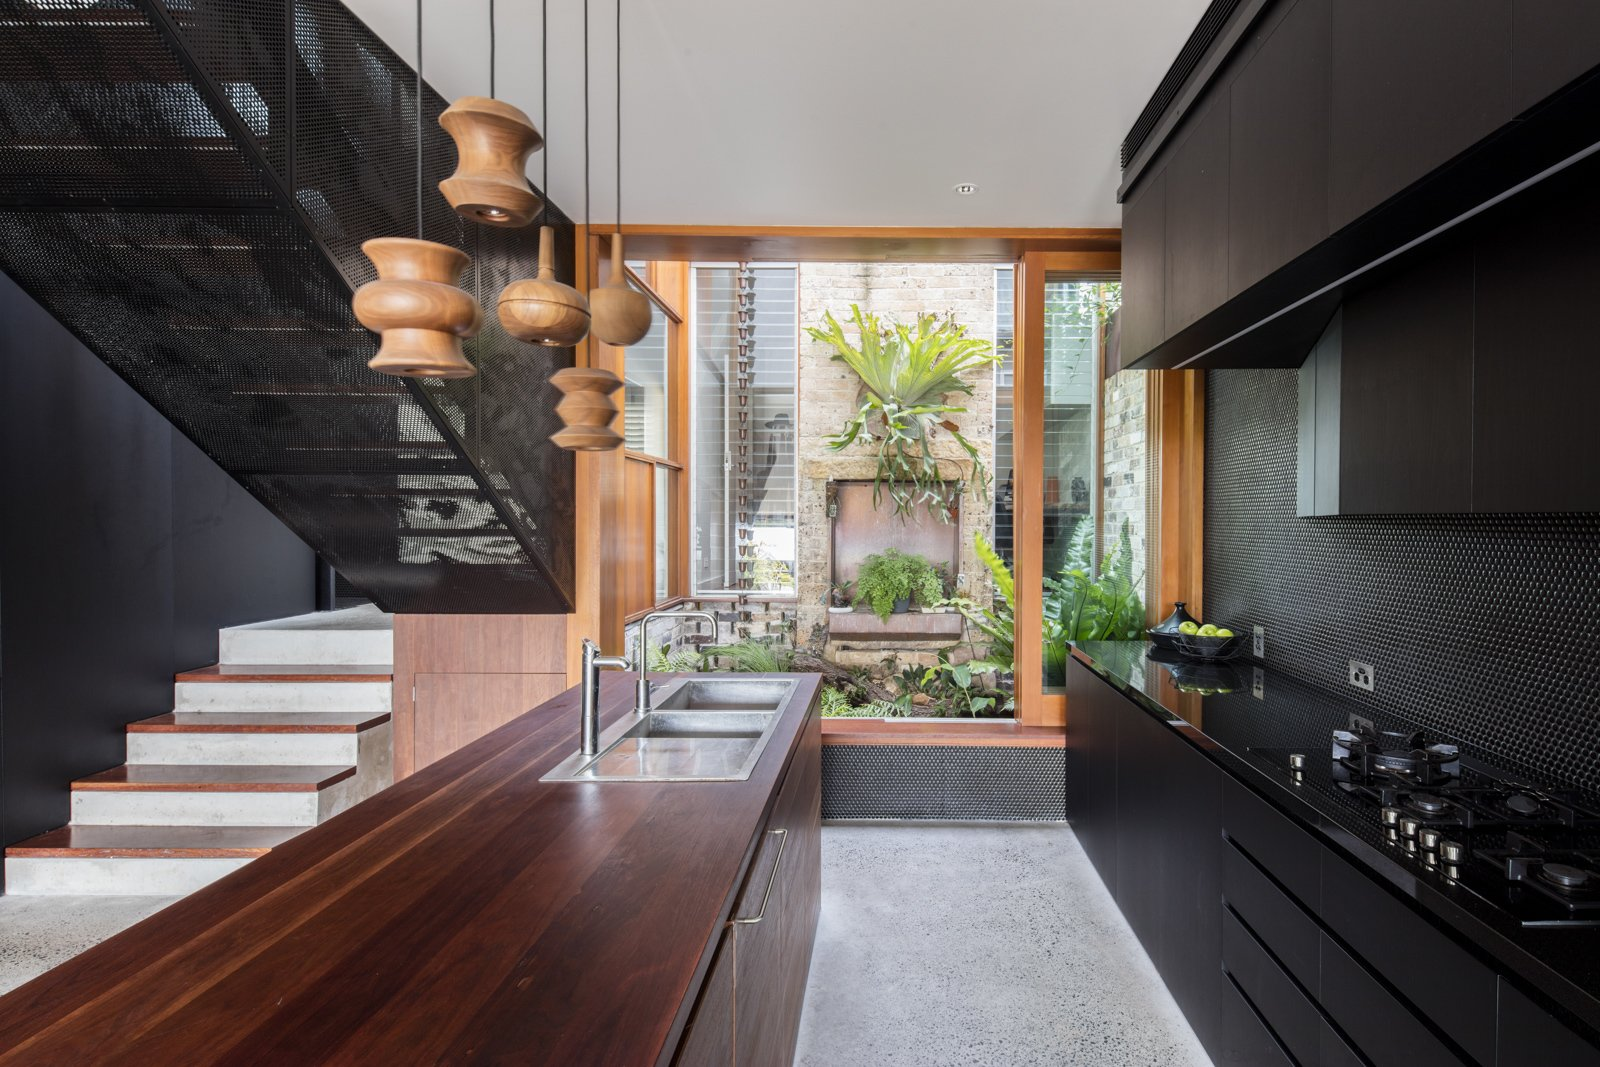 Kitchen, Wood, Drop In, Pendant, Concrete, Metal, Cooktops, and Recessed Large windows and floor-to-ceiling sliding doors have been integrated into the living space, providing an abundance of natural light, as well as easy access to the outdoor garden space.    Kitchen Cooktops Drop In Metal Photos from A Dark Sydney Home Finds Light With a Unifying Expansion